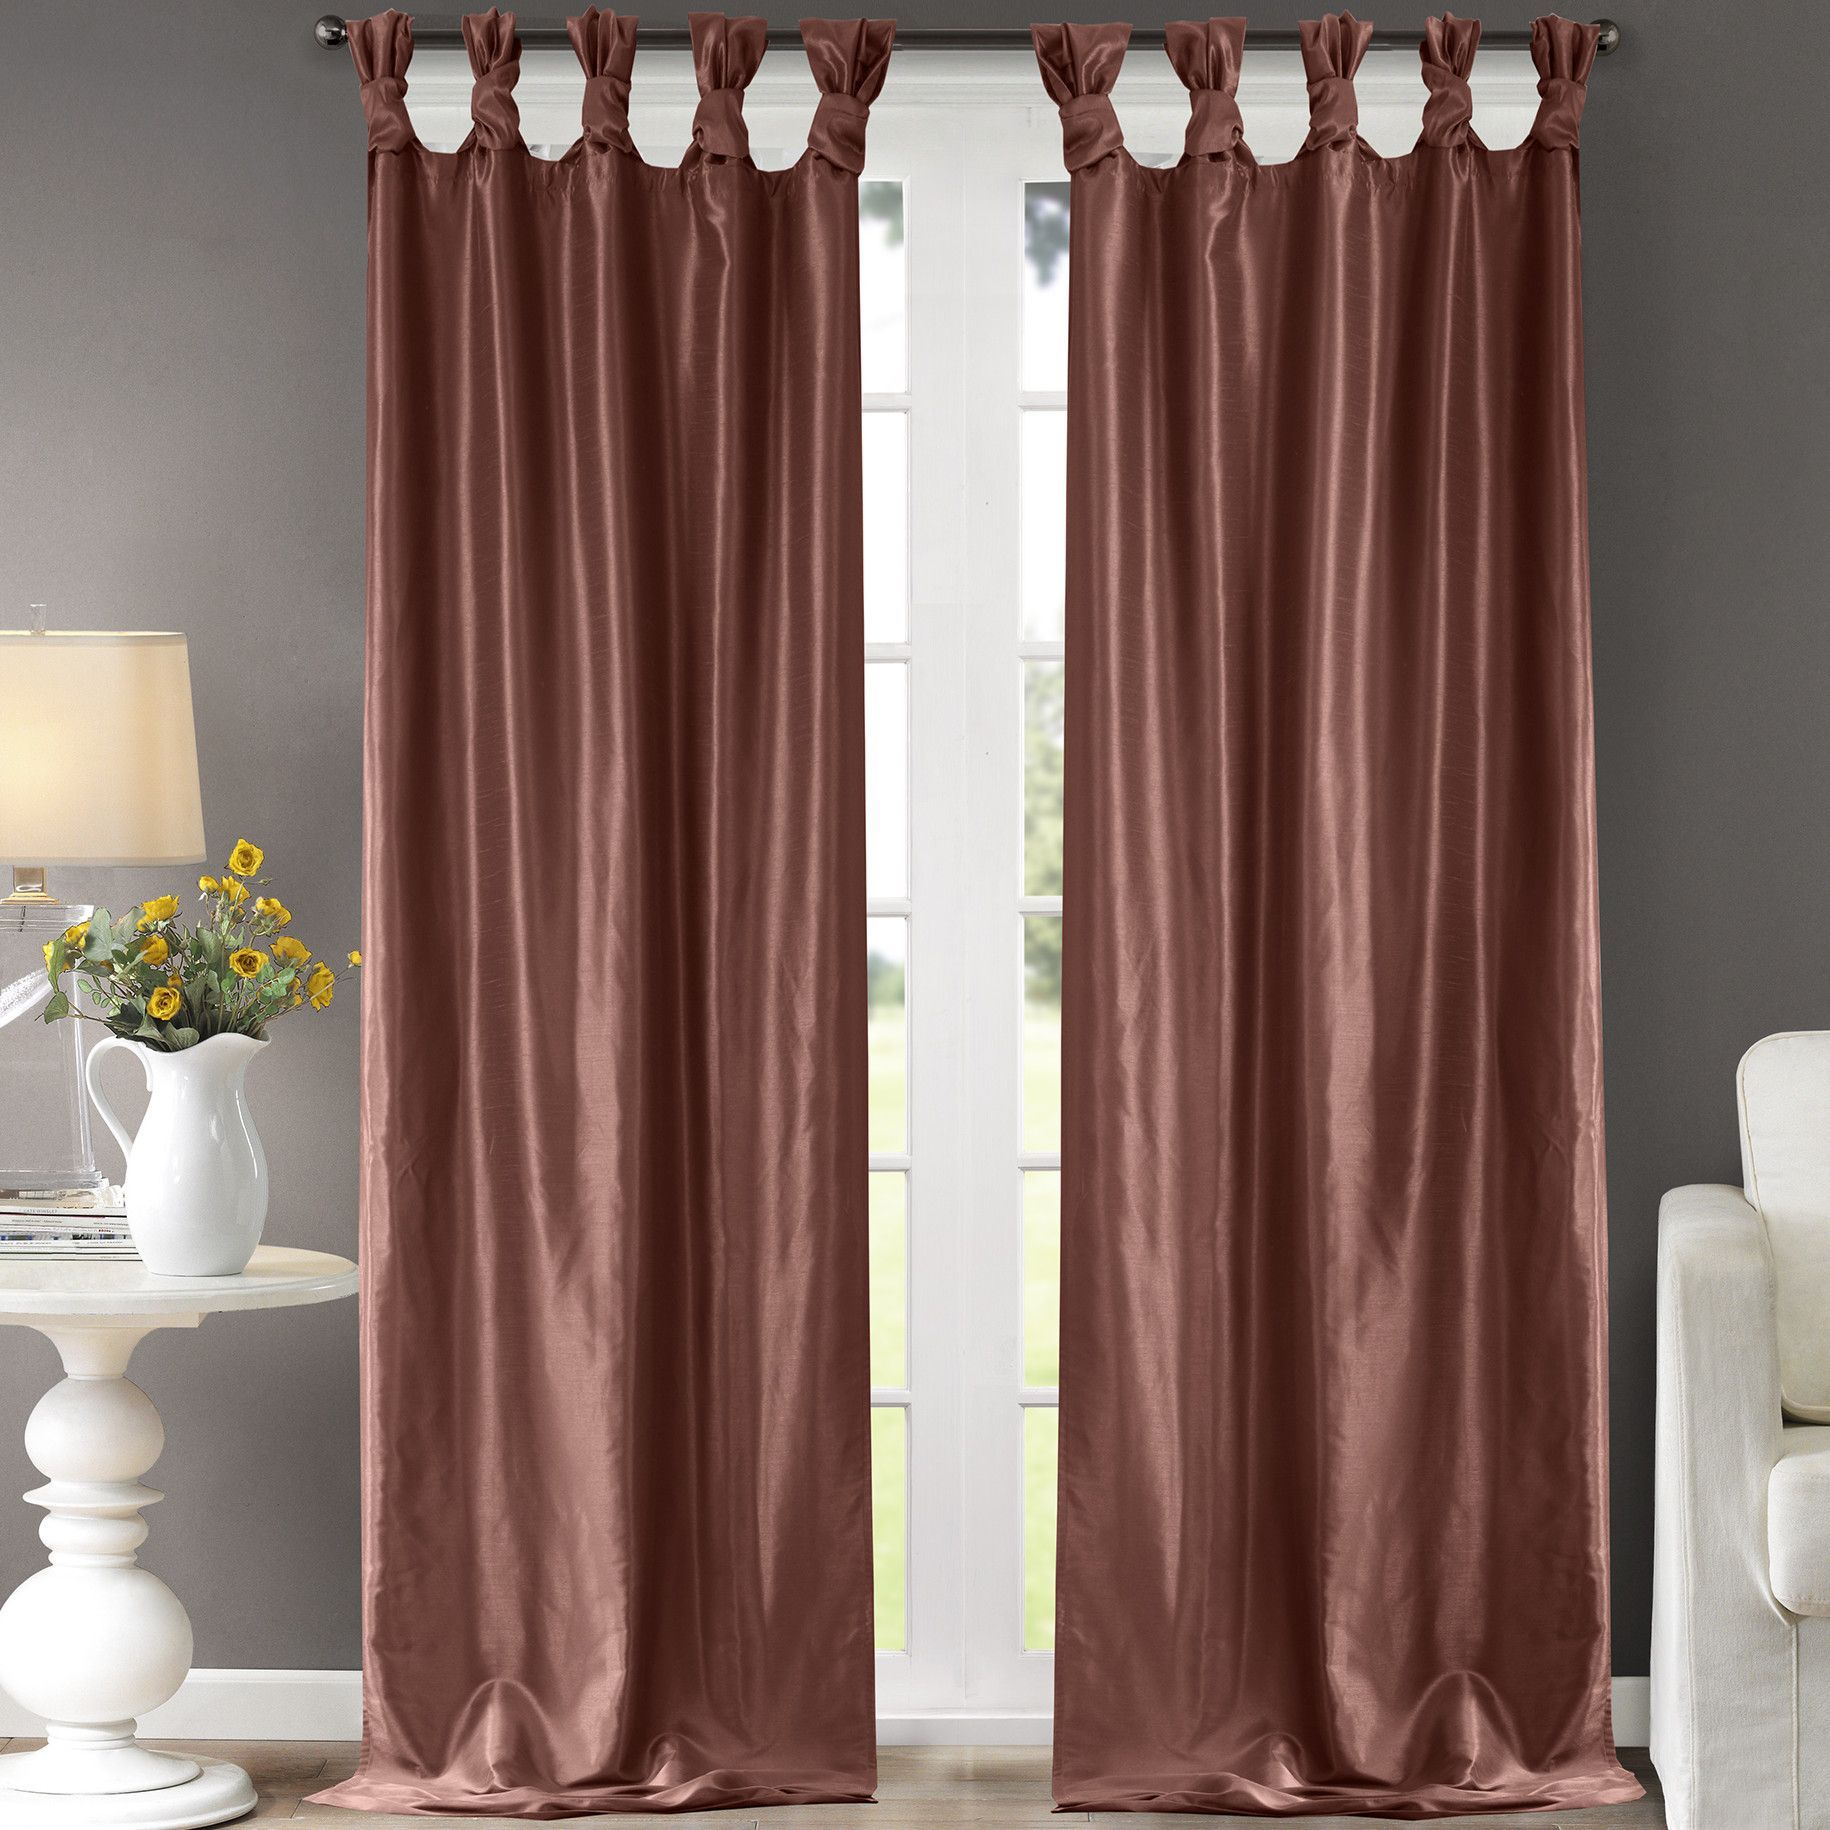 European window coverings  emilia single curtain panel  notes  pinterest  products